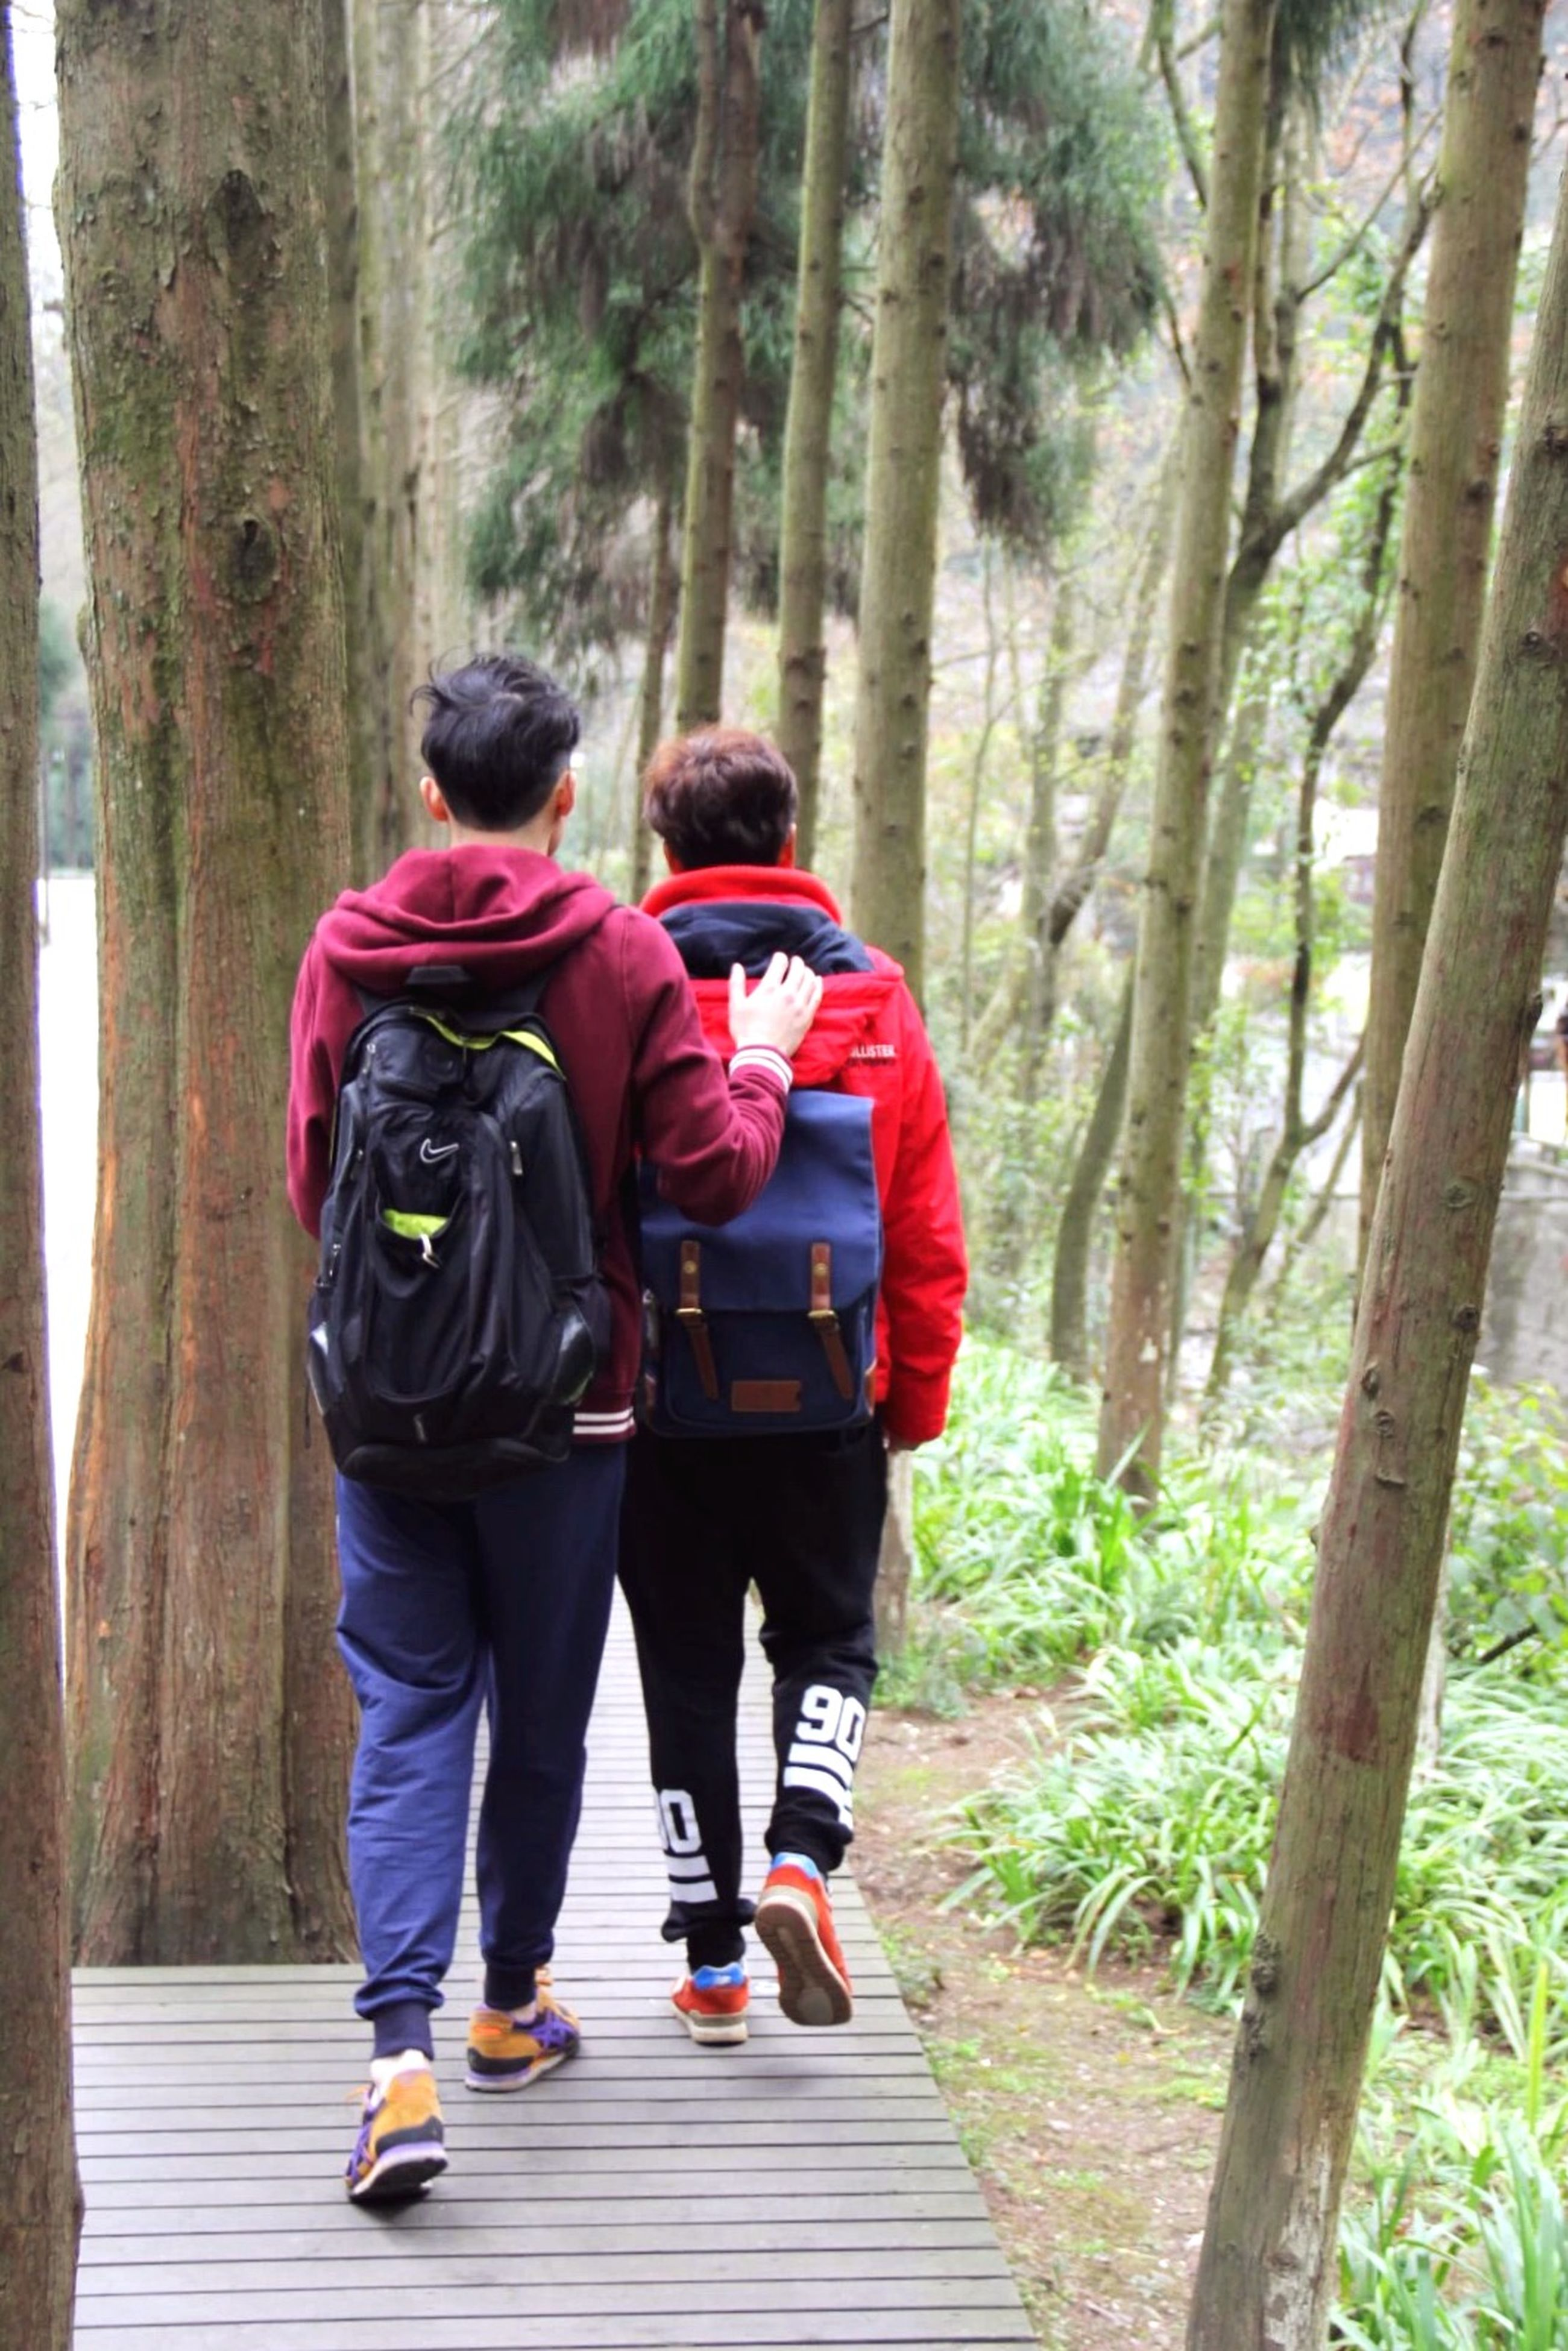 lifestyles, leisure activity, full length, tree, togetherness, casual clothing, rear view, men, bonding, person, love, friendship, forest, walking, backpack, tree trunk